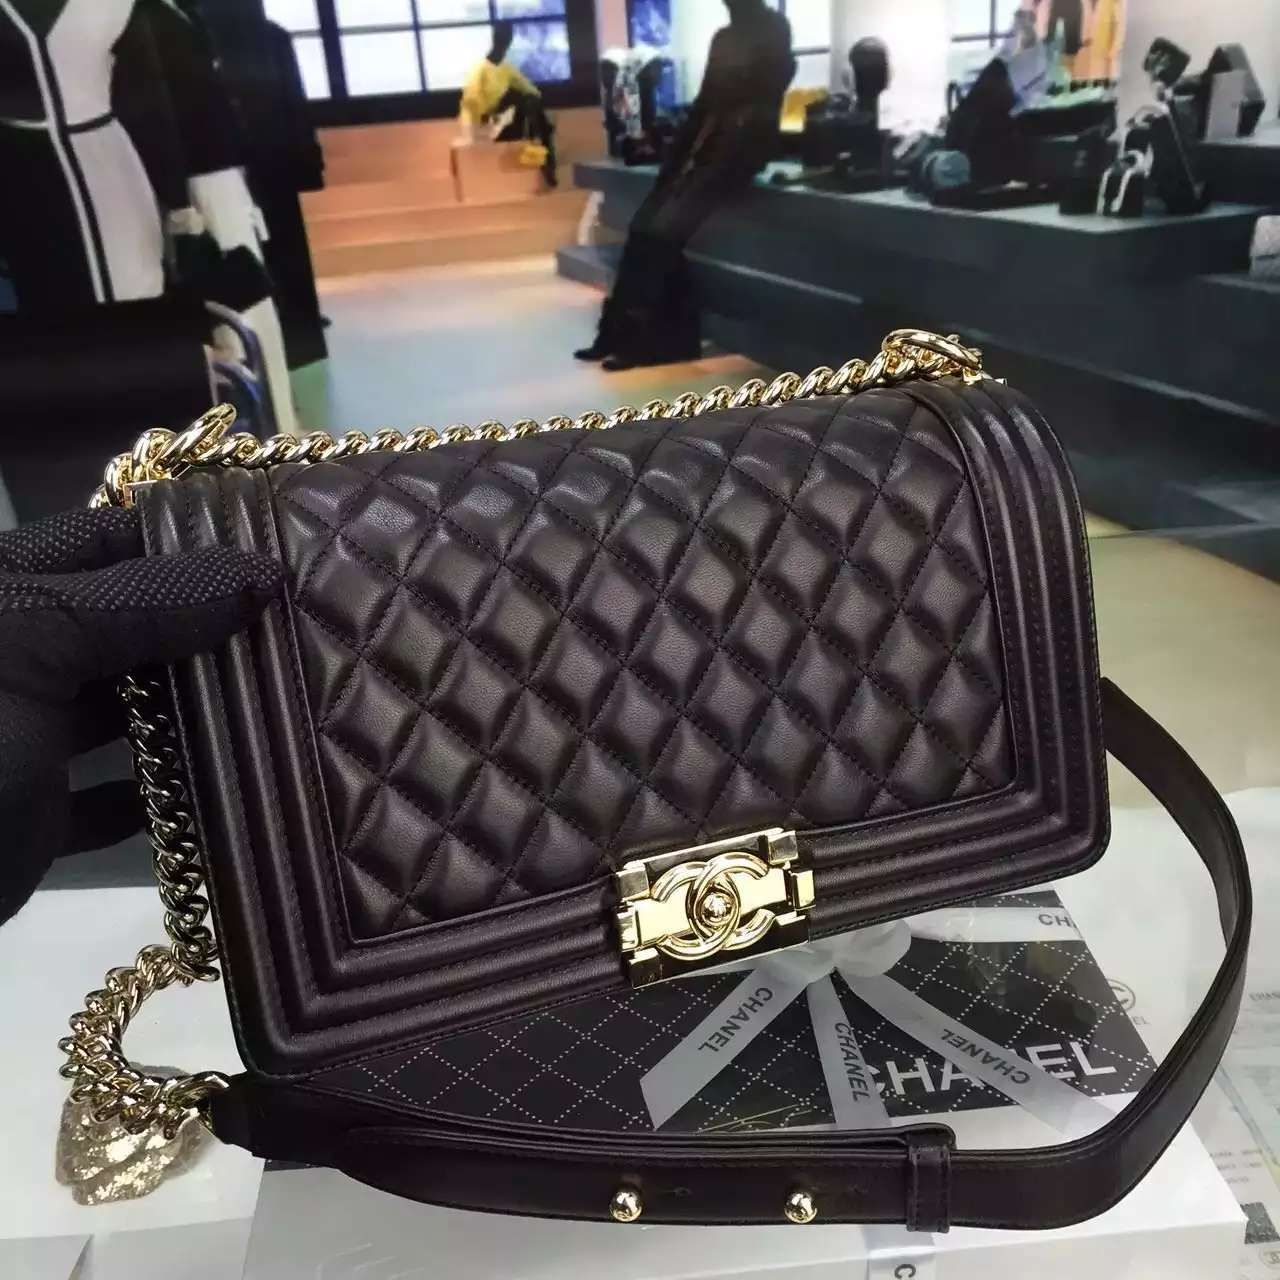 chanel Bag, ID : 46868(FORSALE:a@yybags.com), chanel wallet purse, chanel design, chanel green leather handbag, chanel modes, www chanel 7, shop chanel handbags online, chanel brand, chanel company profile, chanel womens wallet, chanel ostrich handbags, chanel bags and purses, chanel purses outlet, chanel address, chanel leather belts online #chanelBag #chanel #chanel #authentic #handbags